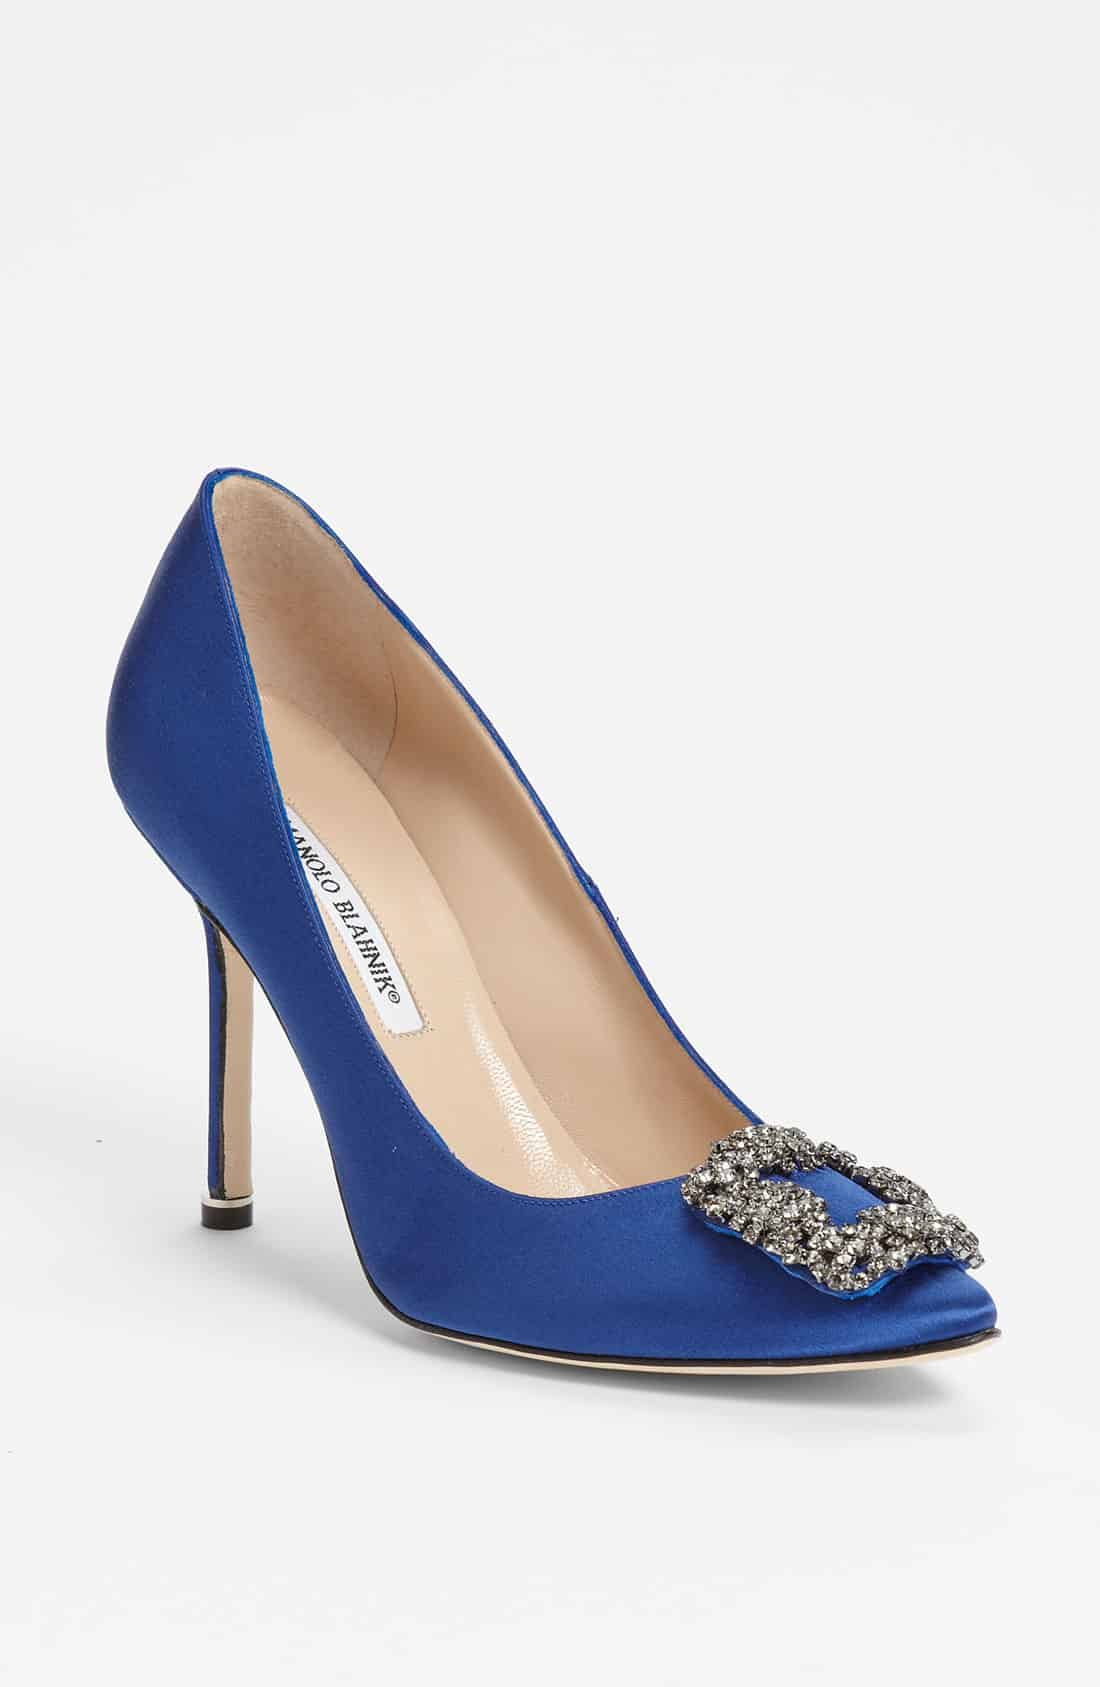 Manolo-Blahnik-Hangisi-Jeweled-Pump-For-Brides-198-1